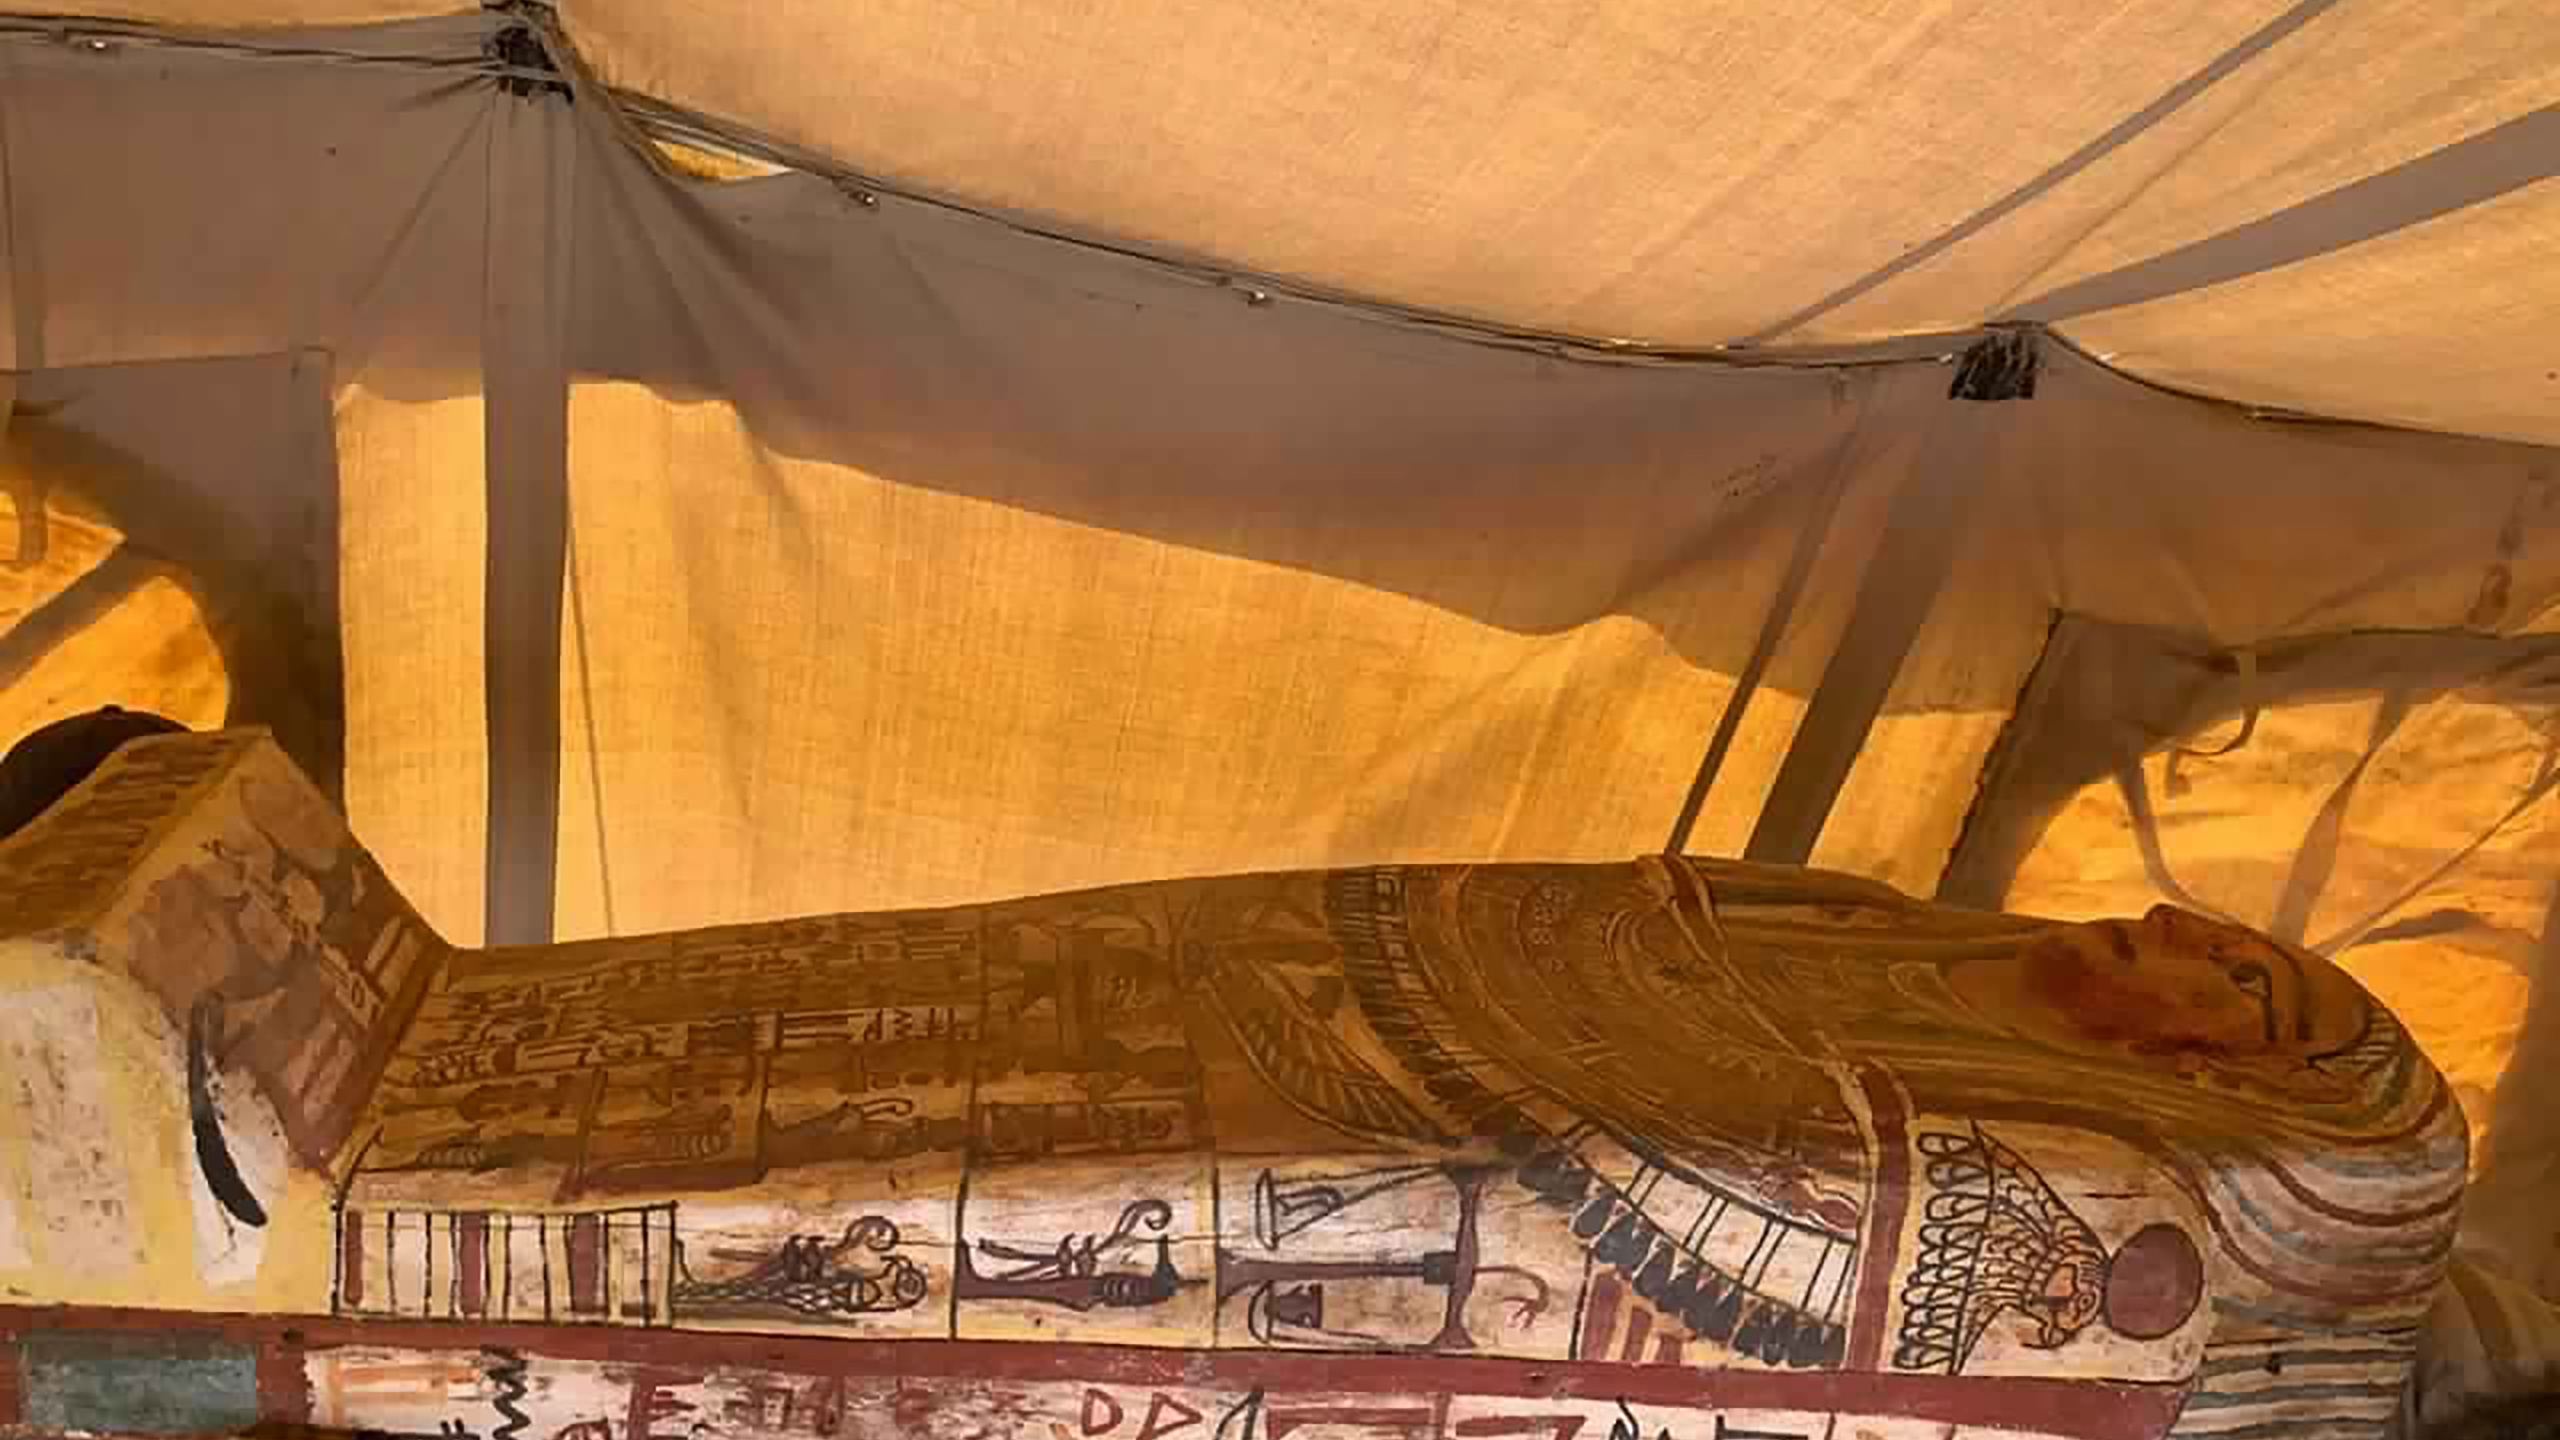 This September 2020 photo provided by the Ministry of Tourism and Antiquities shows one of more than two dozen ancient coffins unearthed near the famed Step Pyramid of Djoser in Saqqara, south of Cairo, Egypt. (Ministry of Tourism and Antiquities via AP)